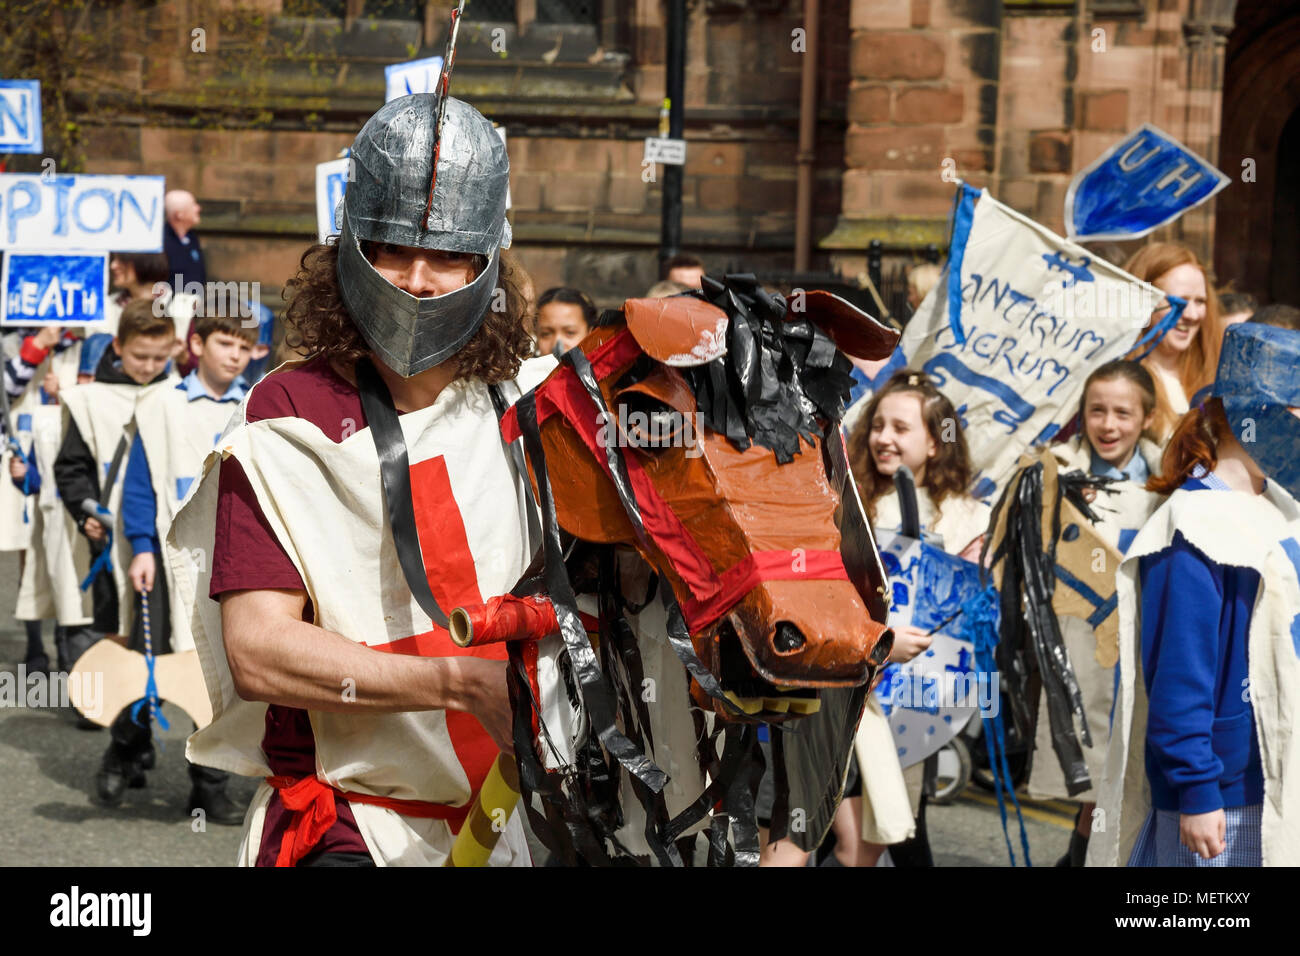 Chester, UK. 23rd April 2018. Phil Cross playing St George performs in the St George's Day parade through Chester city centre. The parade includes street performance, theatre and music with local school children performing many supporting roles. Credit: Andrew Paterson/Alamy Live News - Stock Image